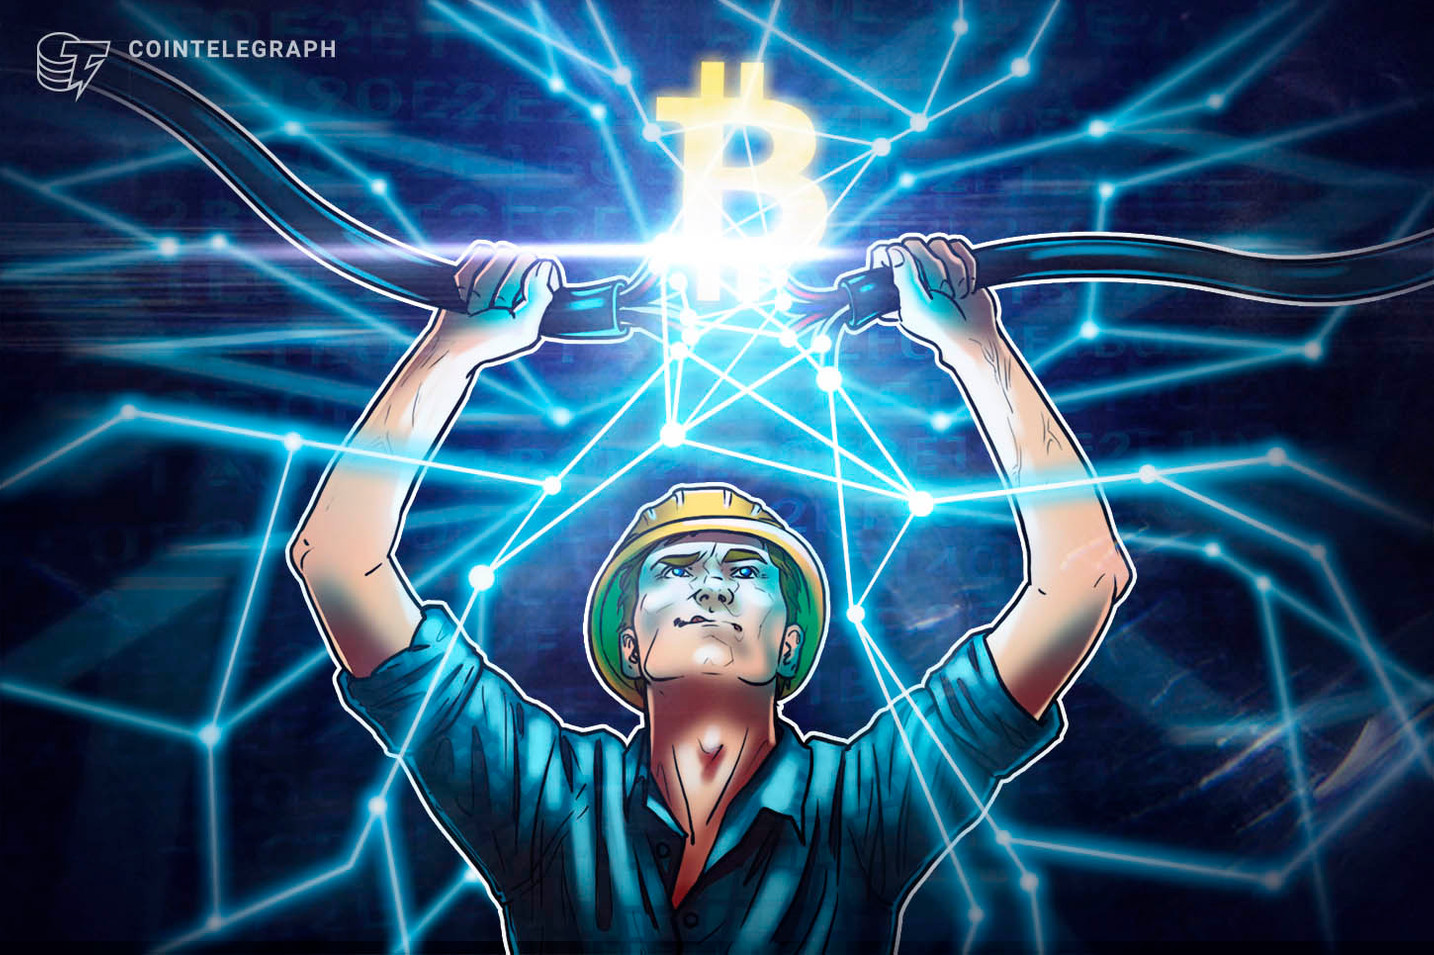 Bitcoin's power consumption this year has already surpassed all of 2020's